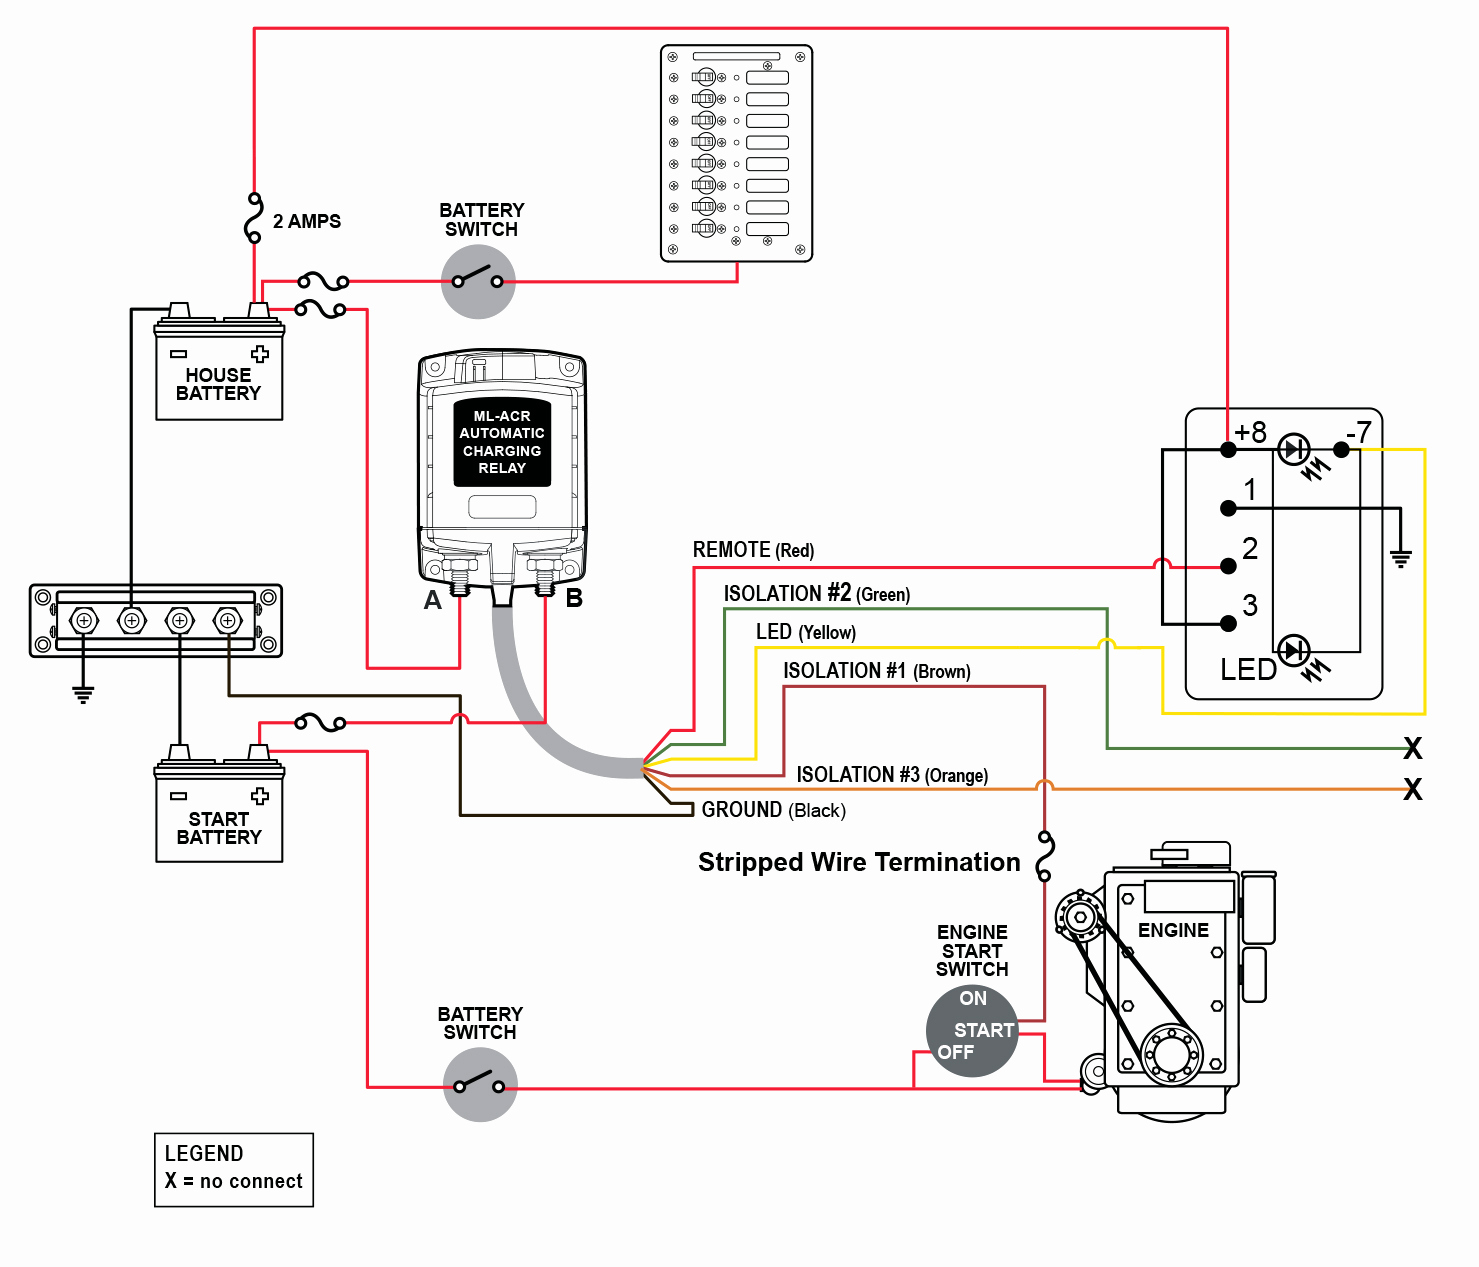 Rv Converter Wiring Diagram Awesome Rv Inverter Wiring Diagram - Rv Converter Wiring Diagram